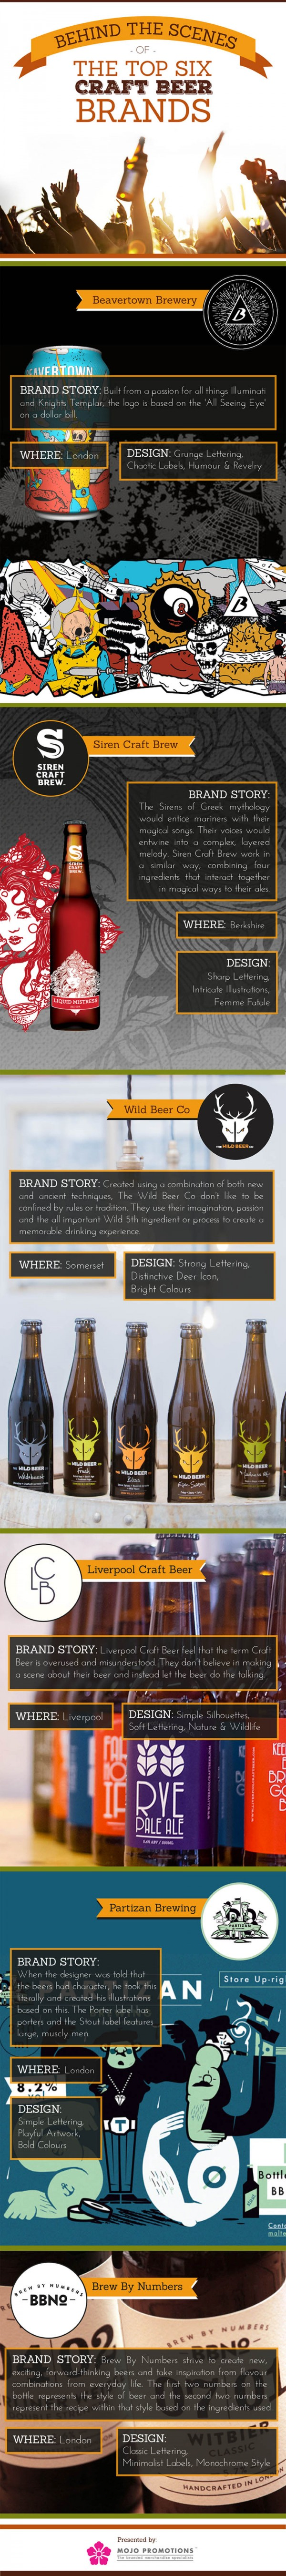 Mojo - Craft Beer Brands - Infographic